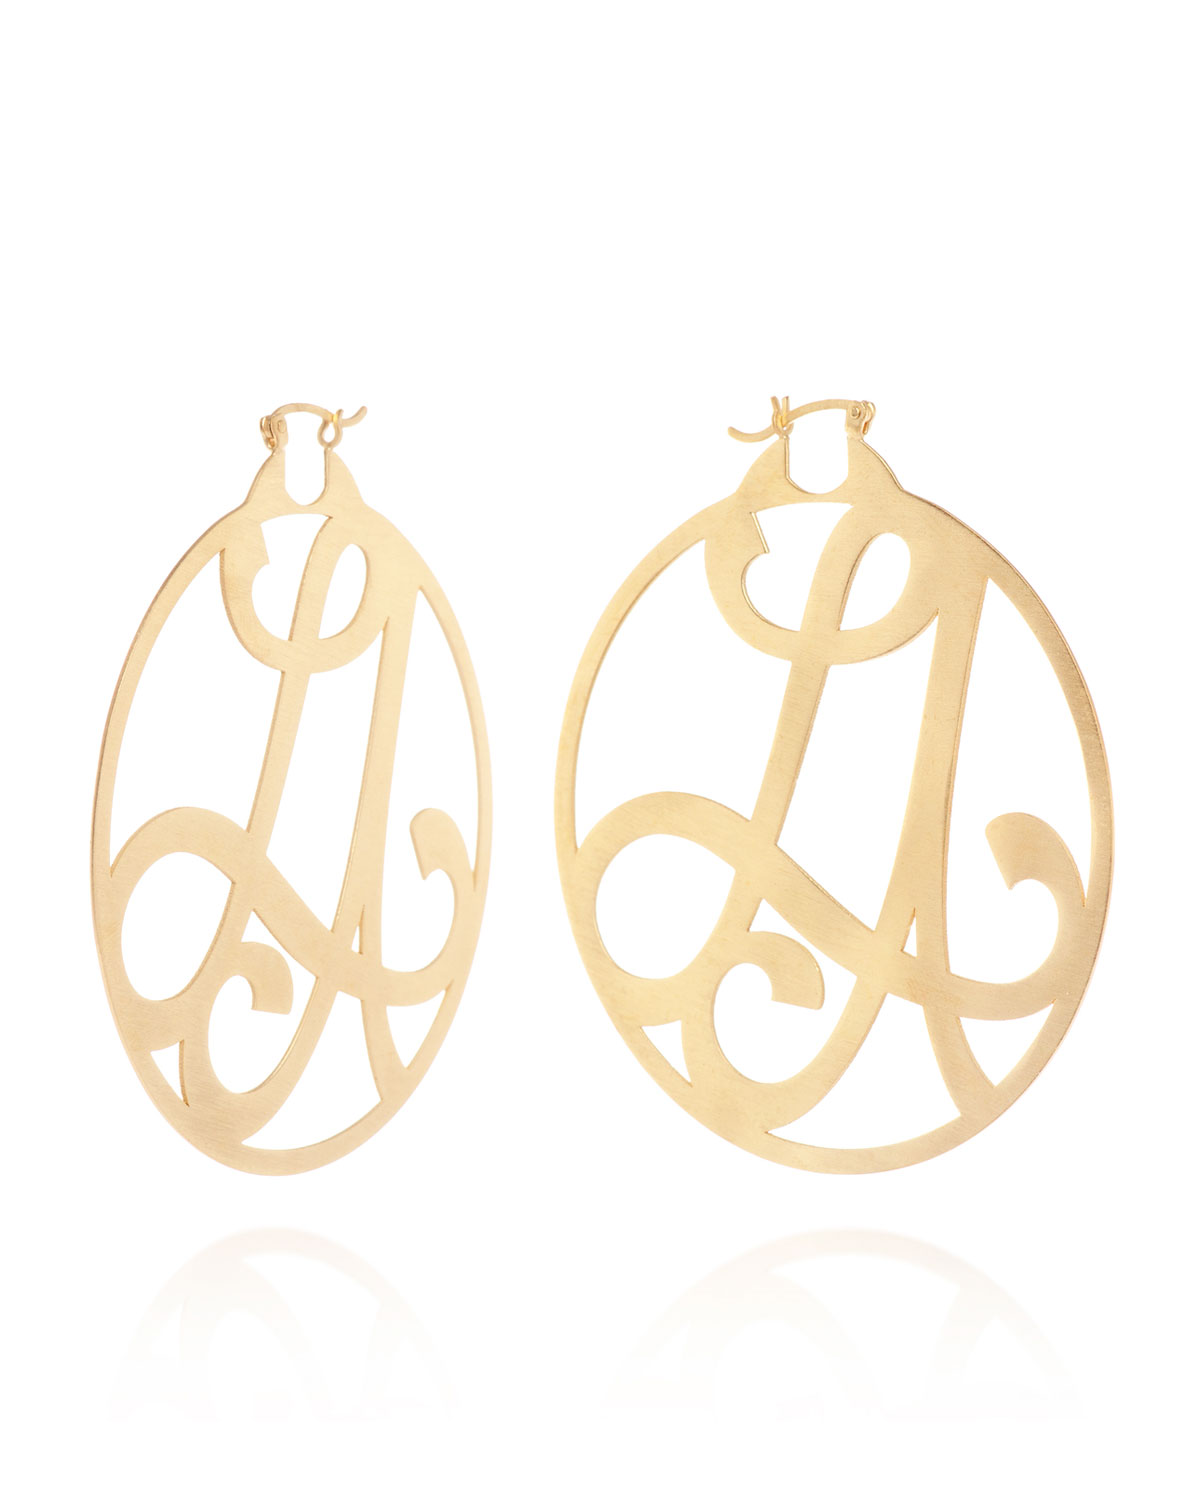 Medium 2 Initial Monogram Hoop Earrings Yellow Gold